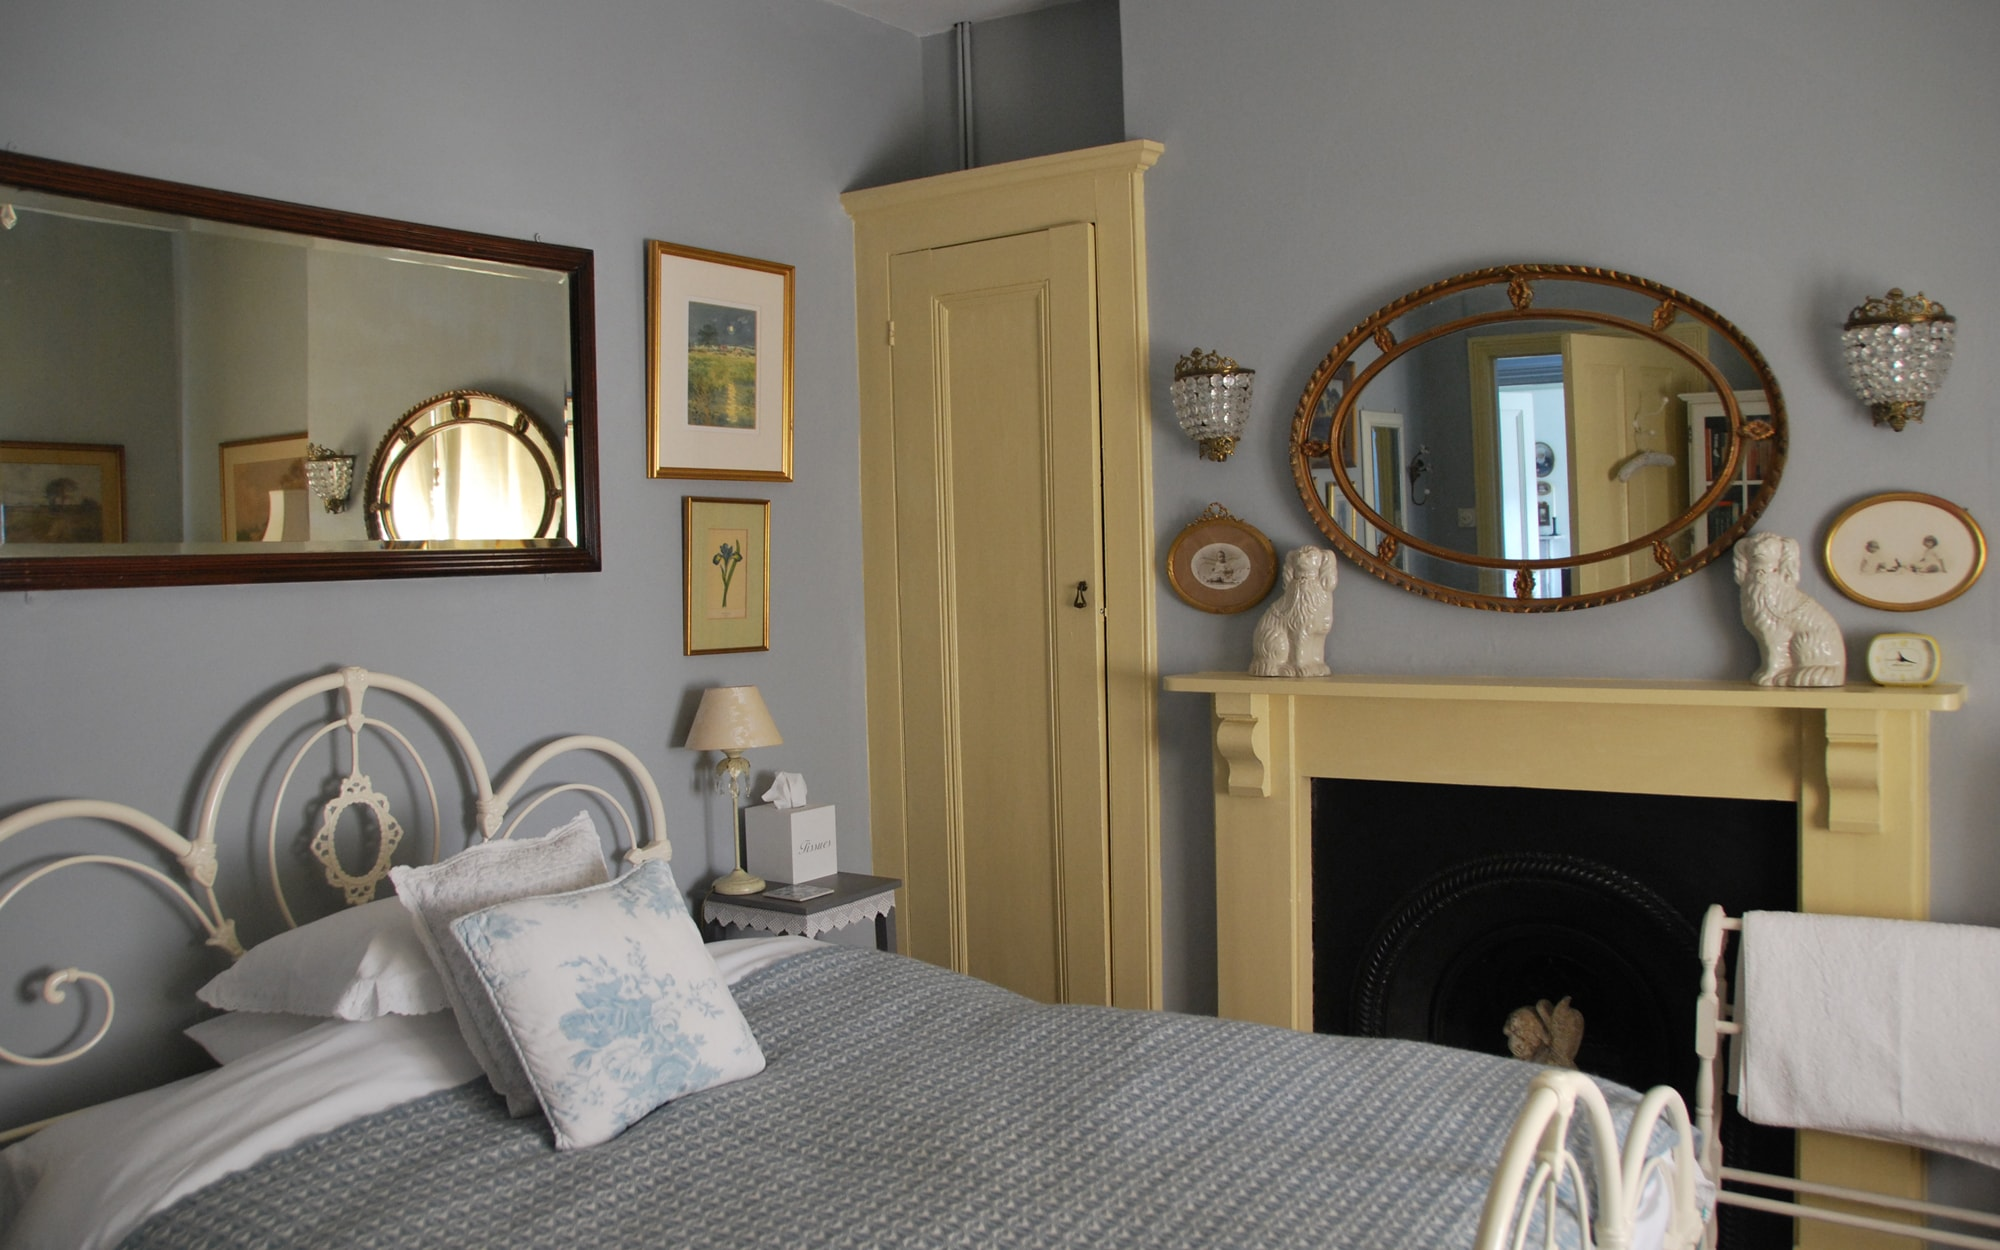 Bed And Breakfast Petersfield Hampshire Best Hotels In South Downs Telegraph Travel